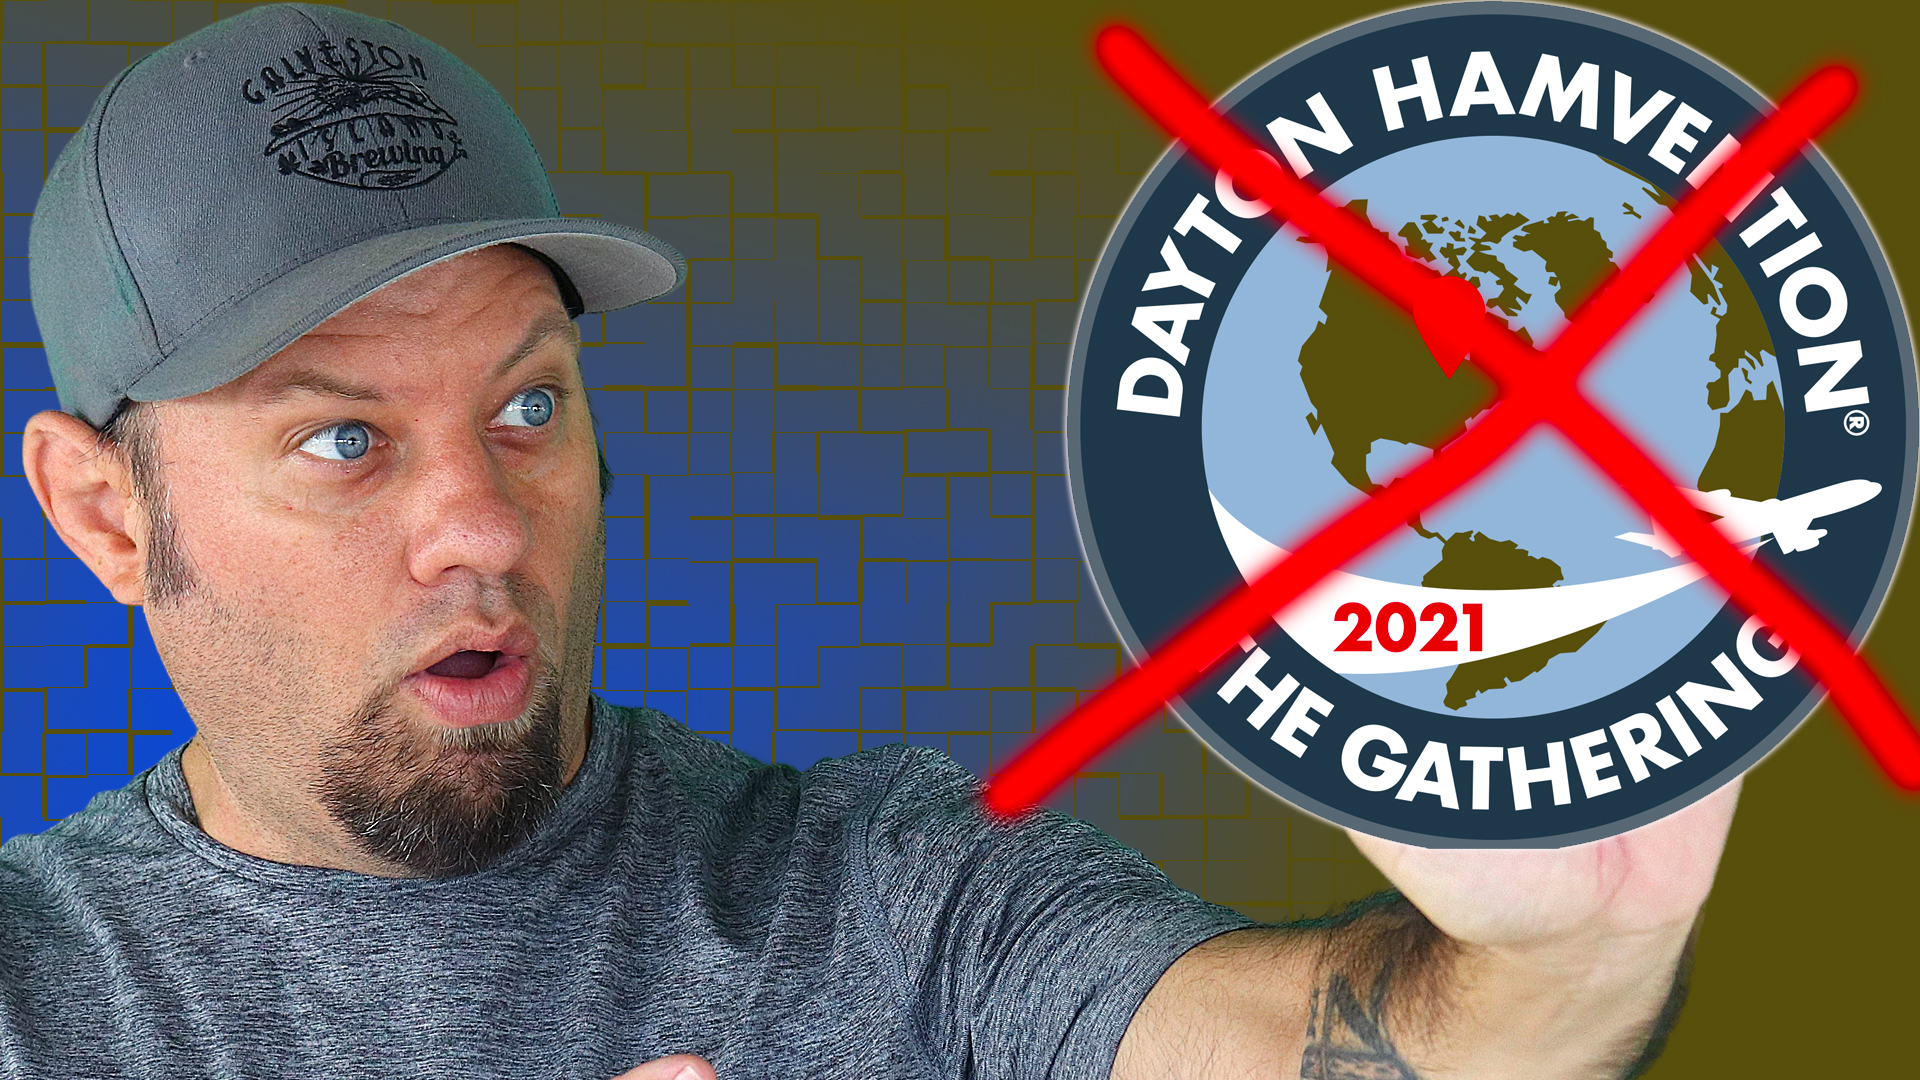 Episode 529: Hamvention 2021 is Officially Cancelled